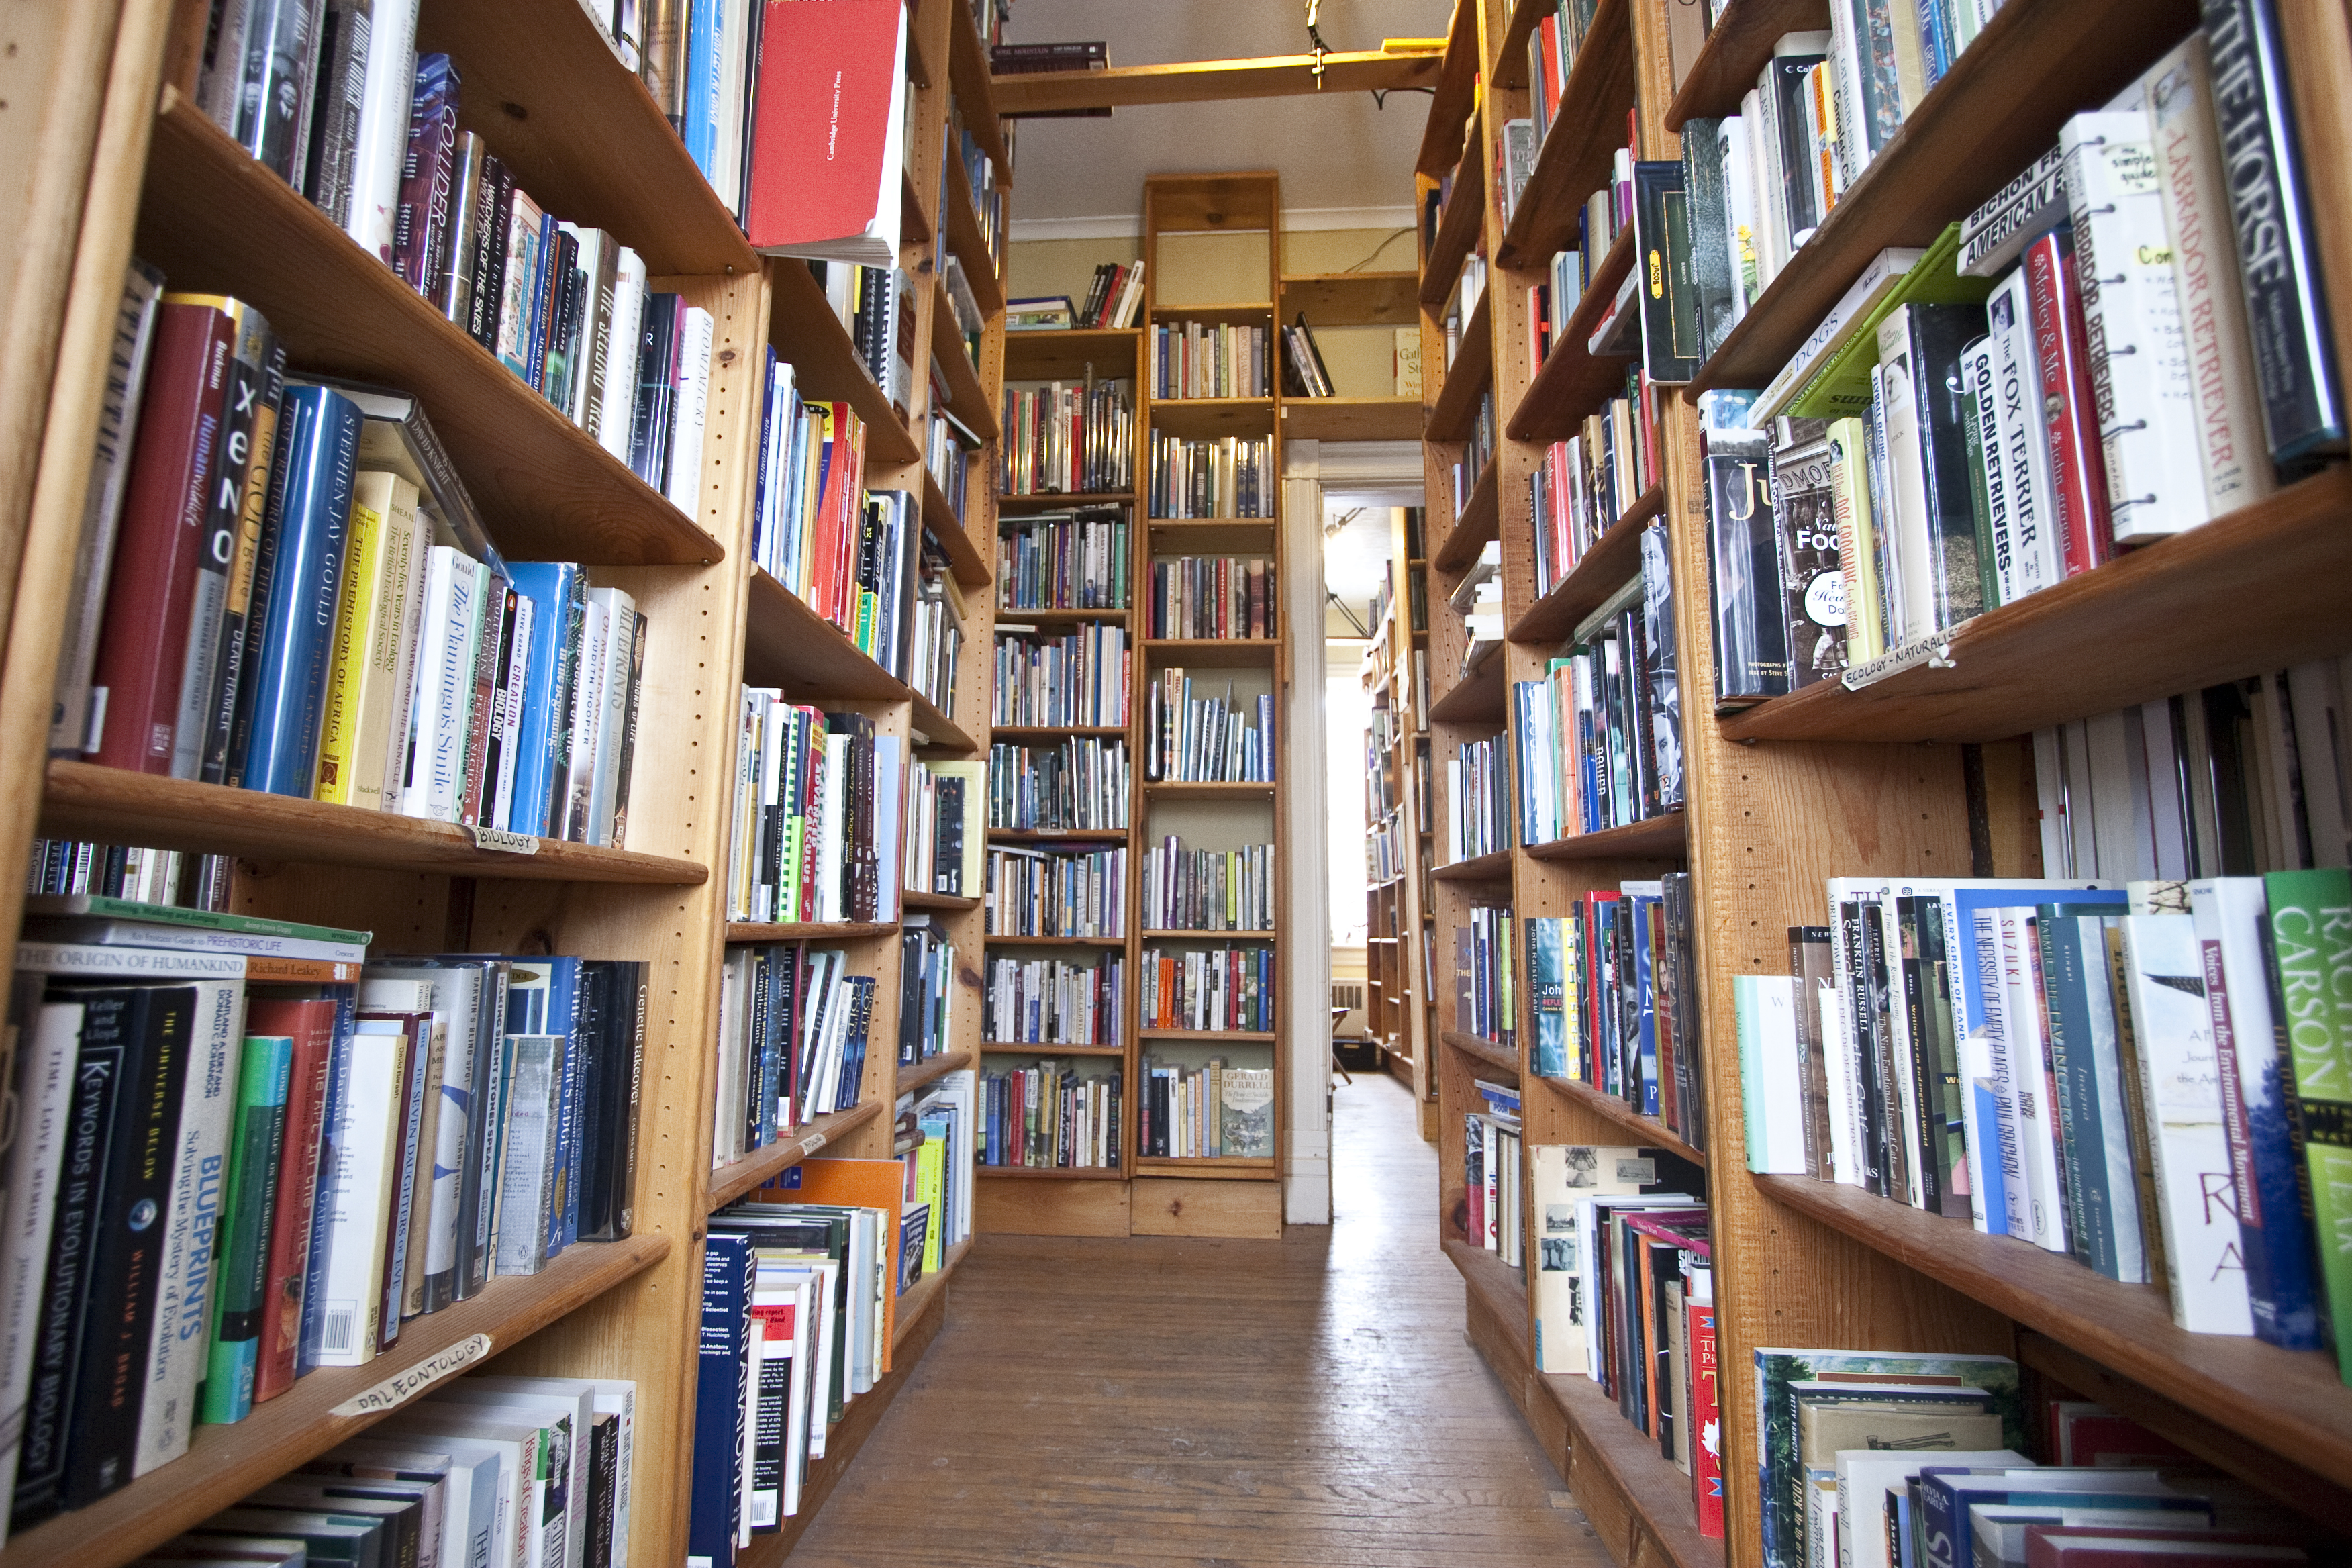 Old Goat Books in Uptown Waterloo (photo by Kate Turner)